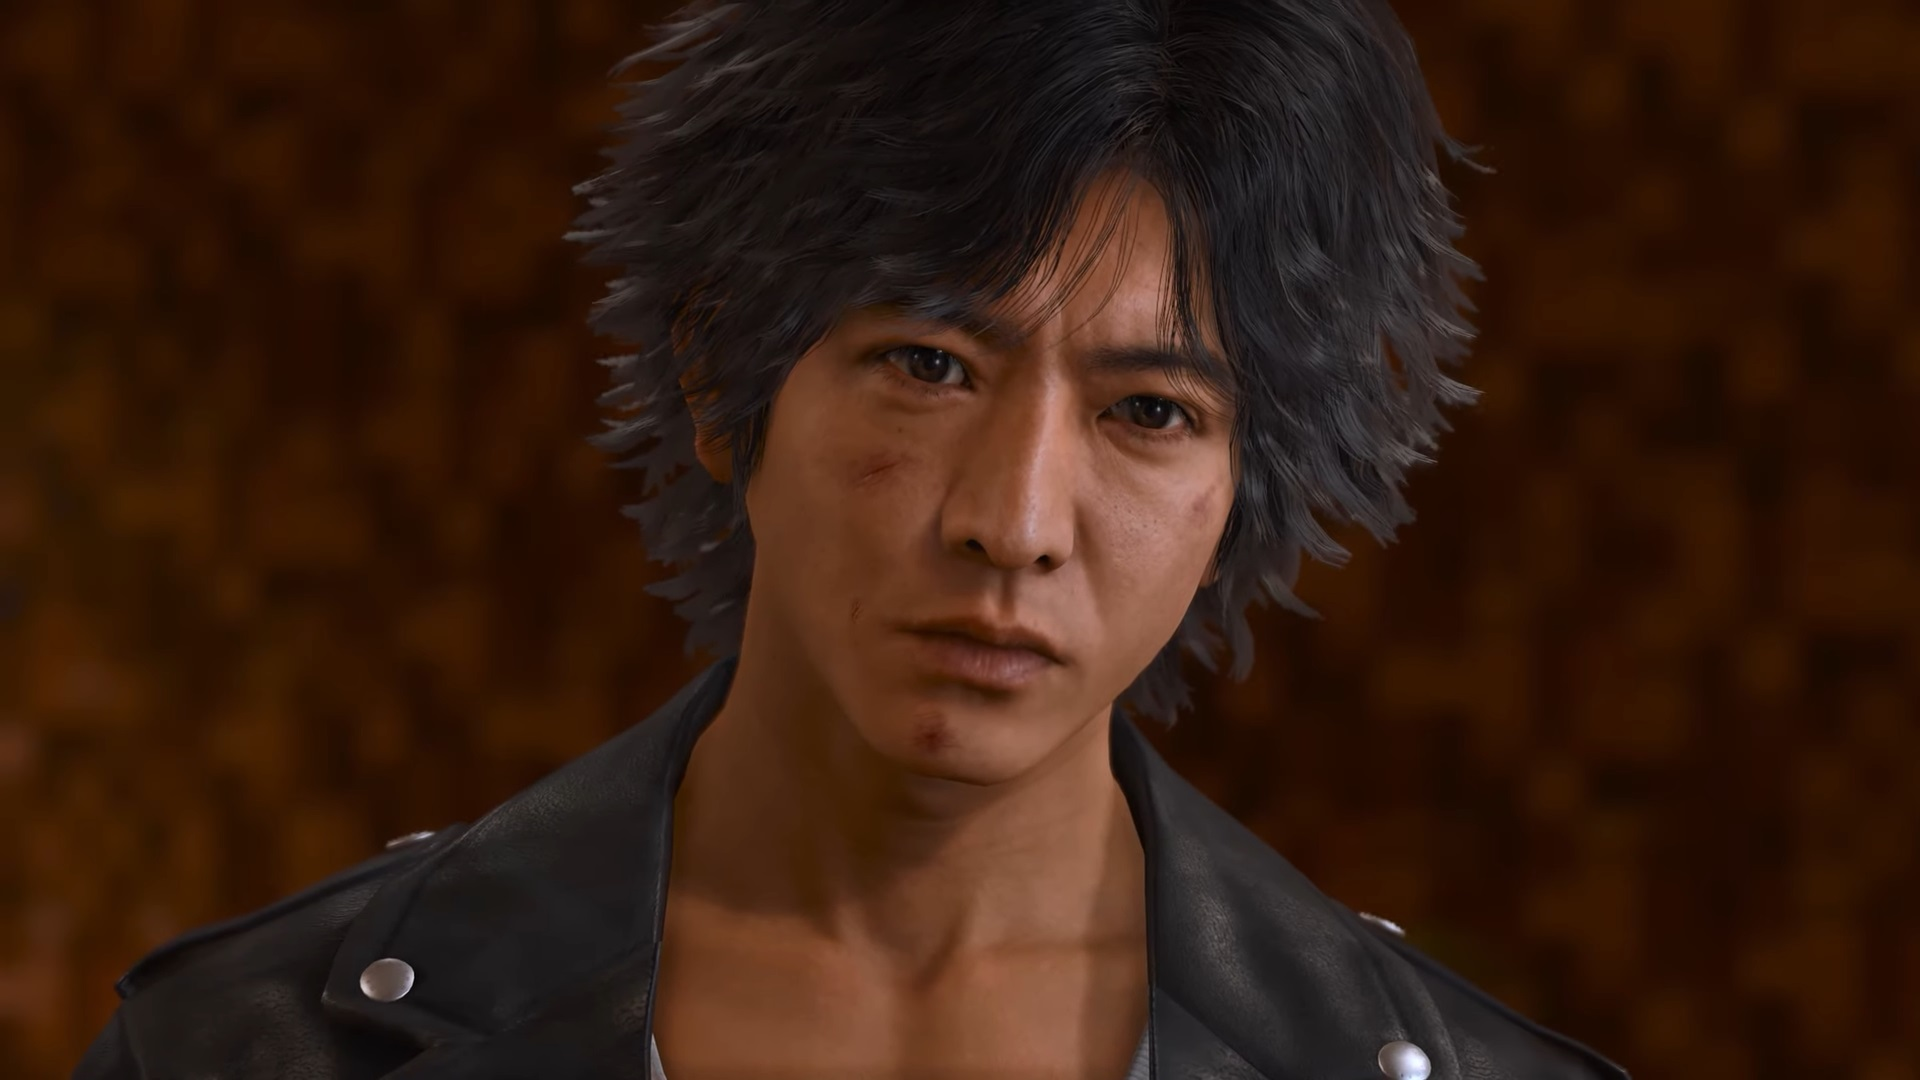 Yagami looking rough in Lost Judgment